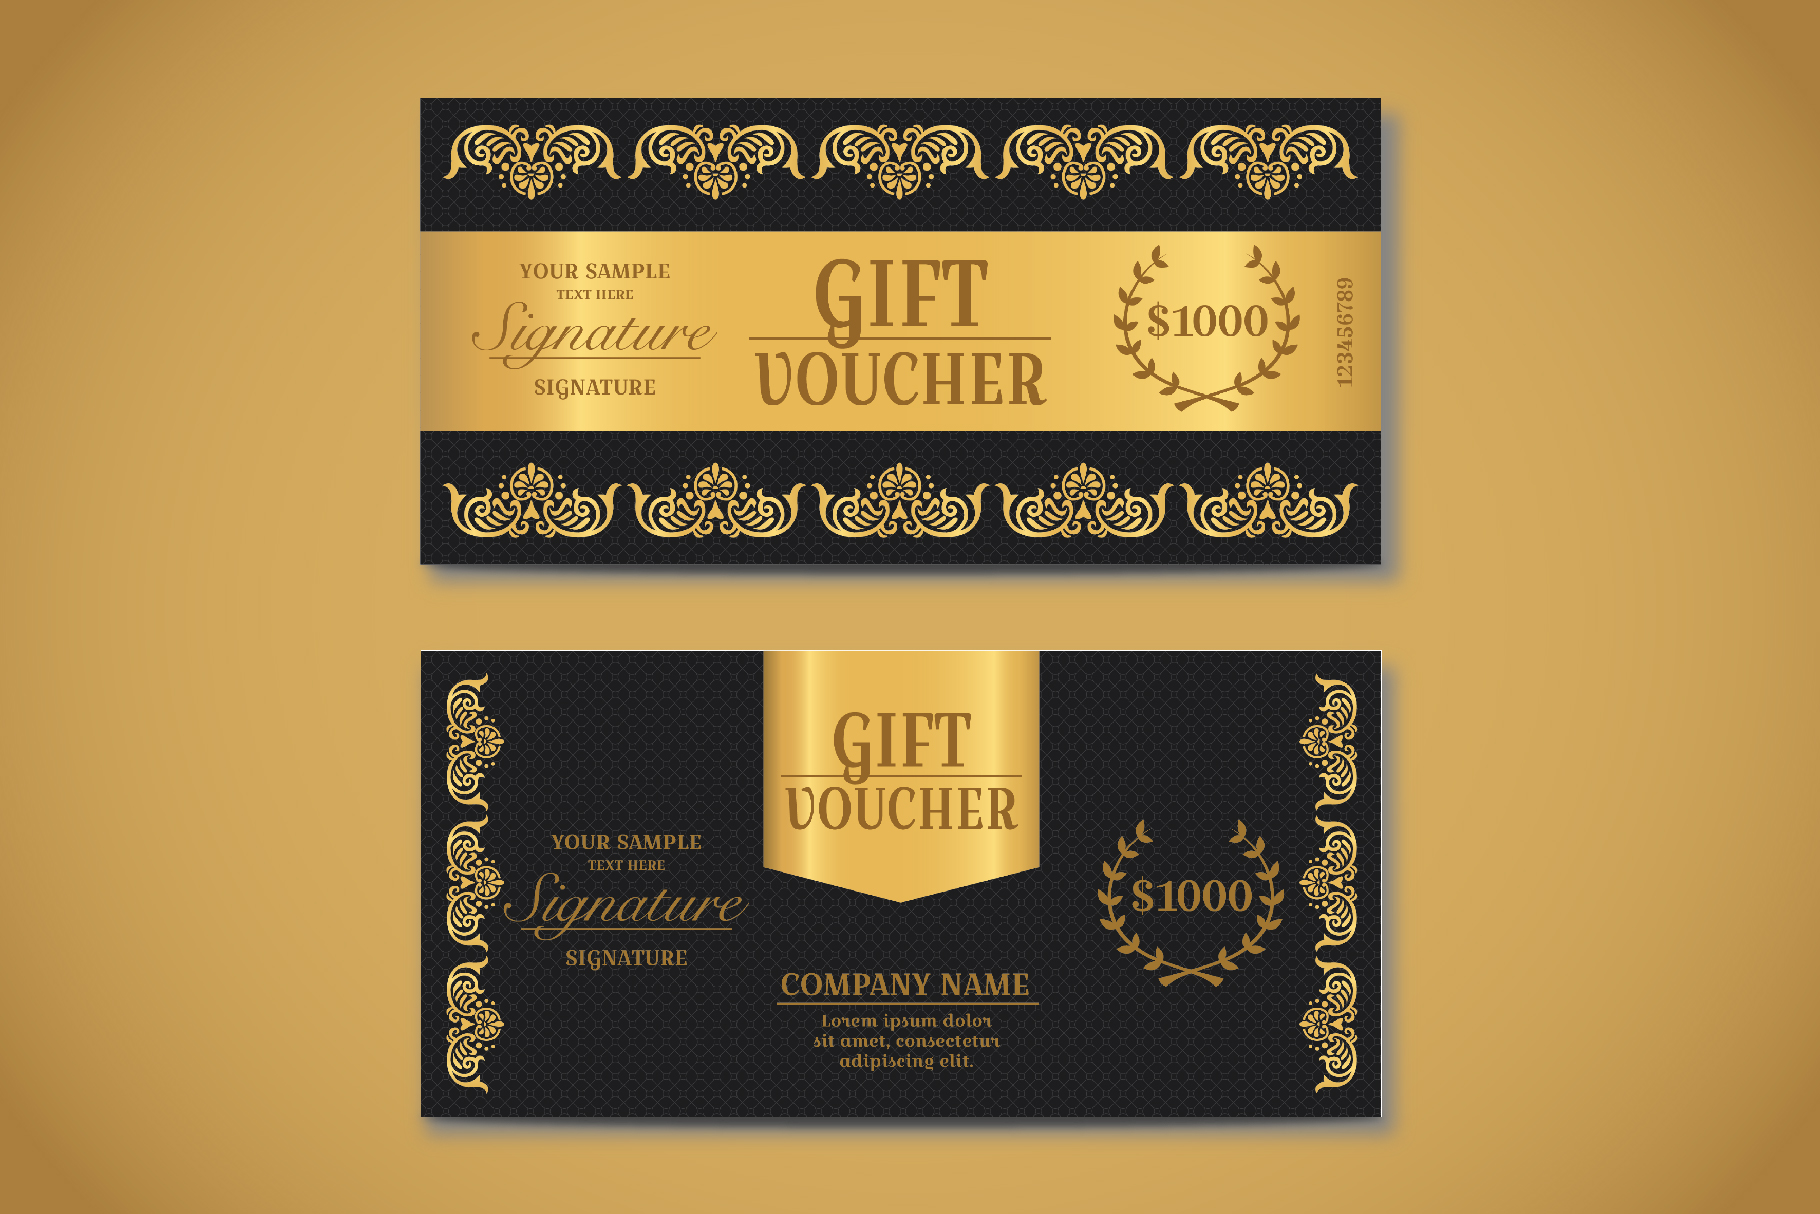 Exclusive Gift Voucher Template example image 2